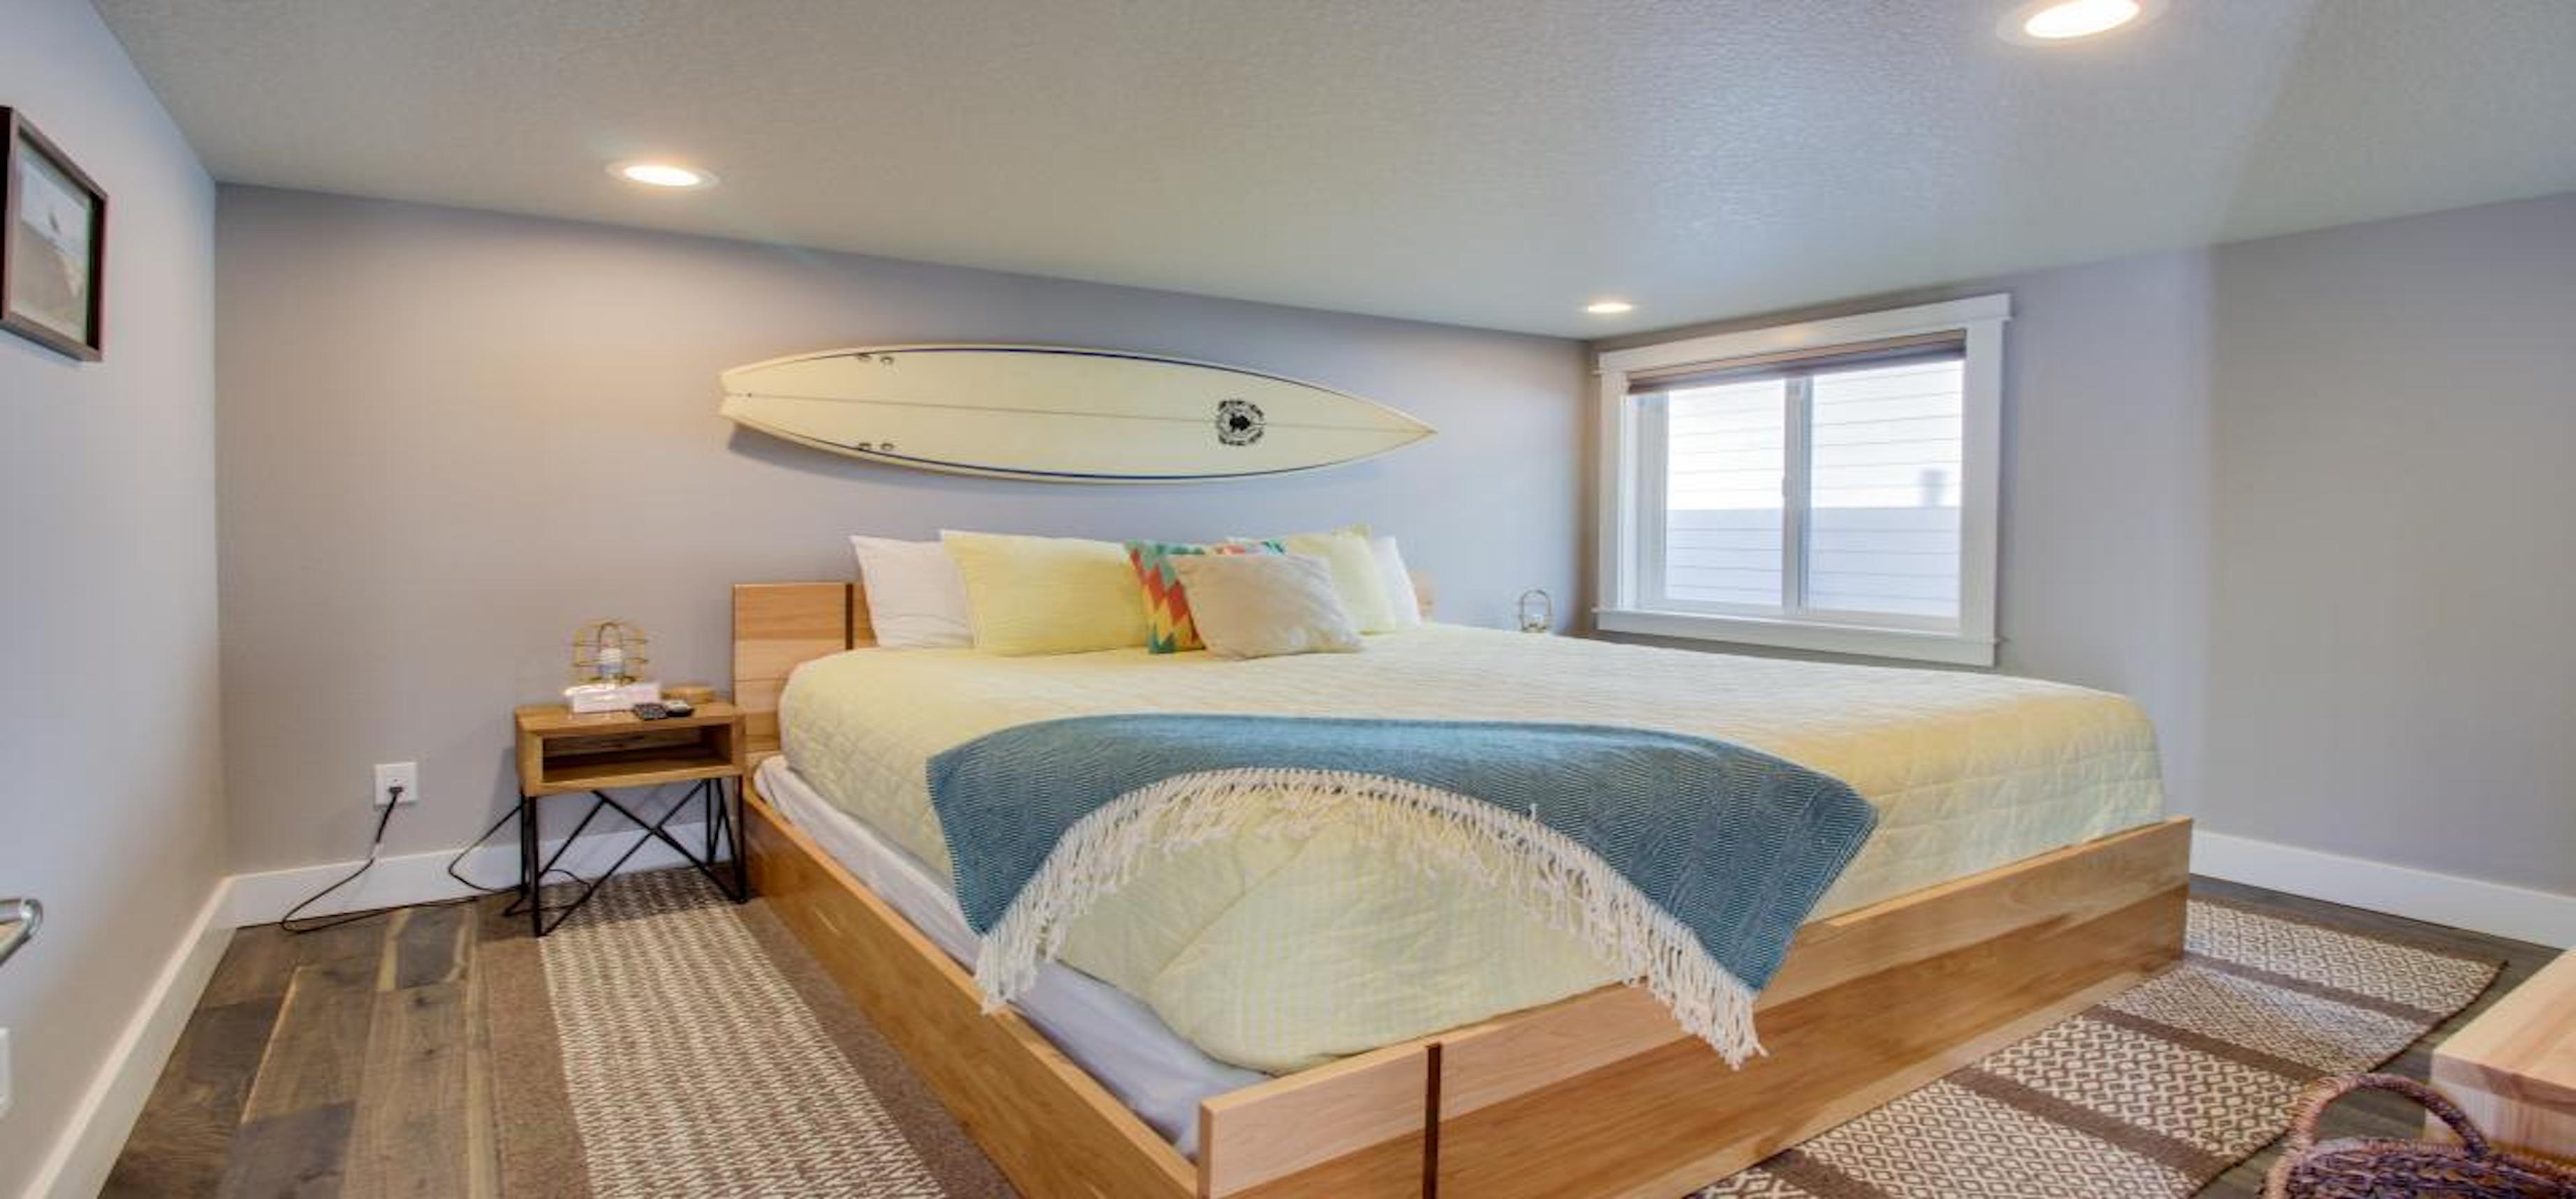 Oceanside Inn - one bedroom